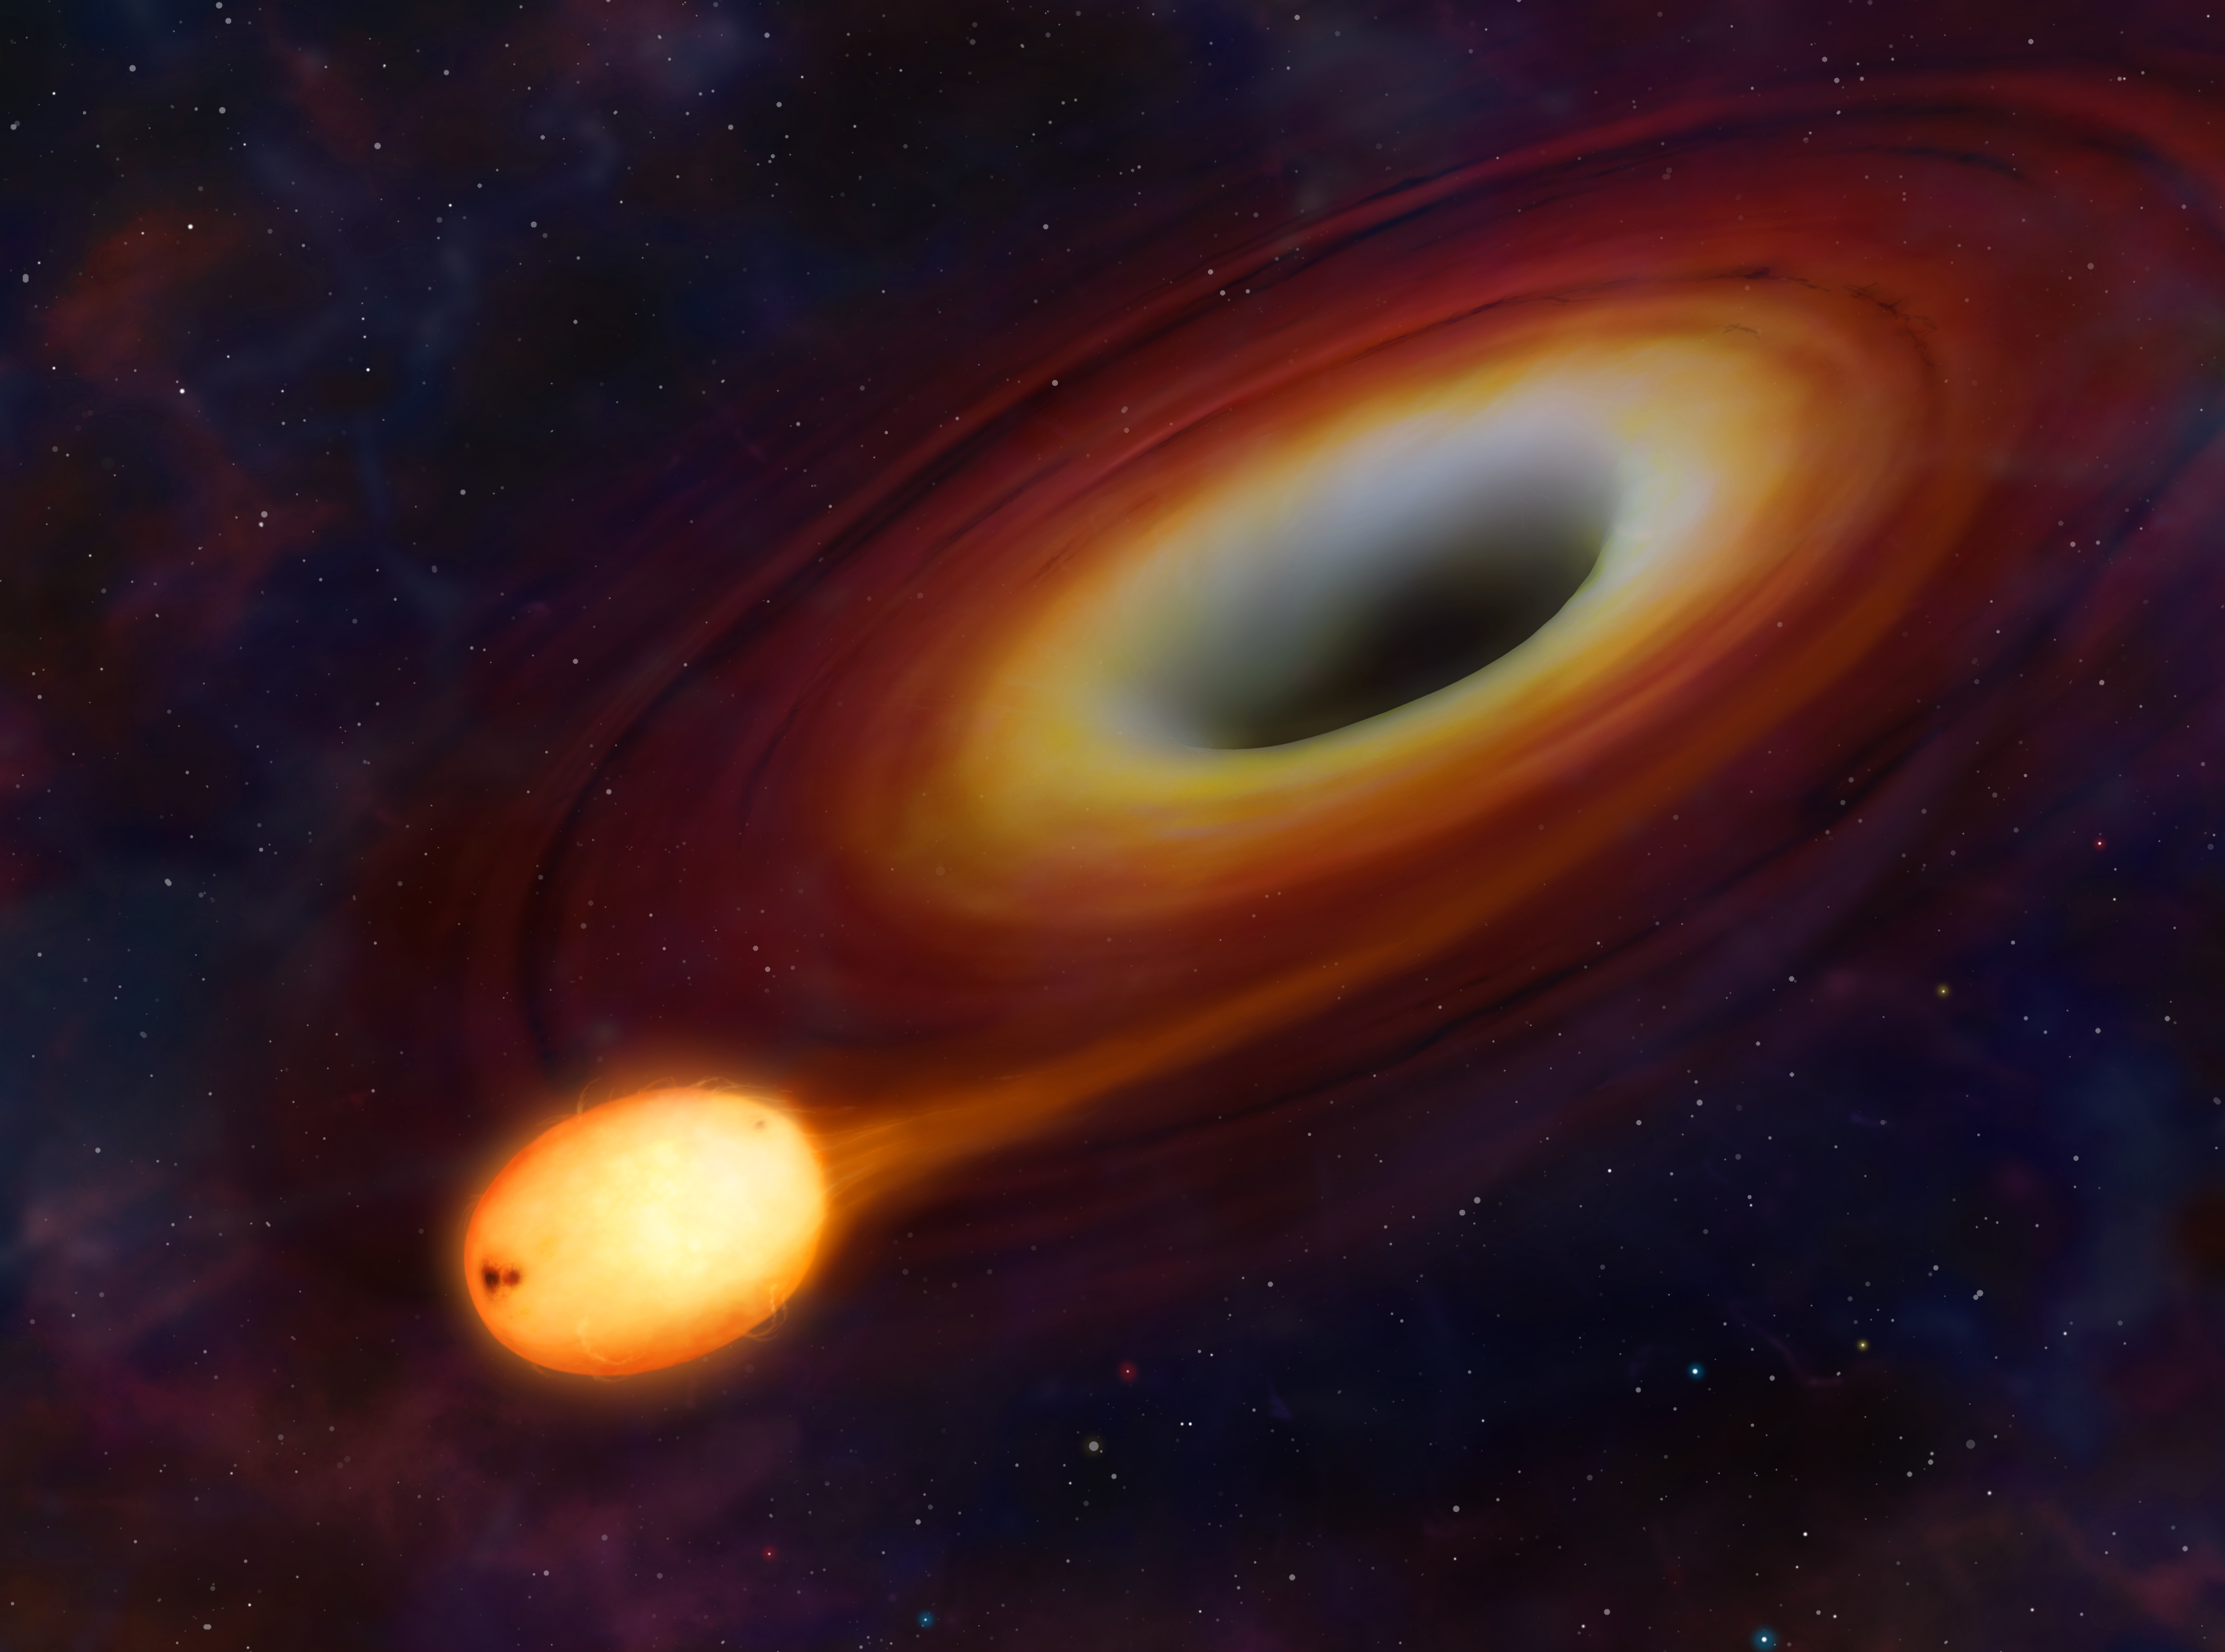 7 weird facts about black holes mnn mother nature network -